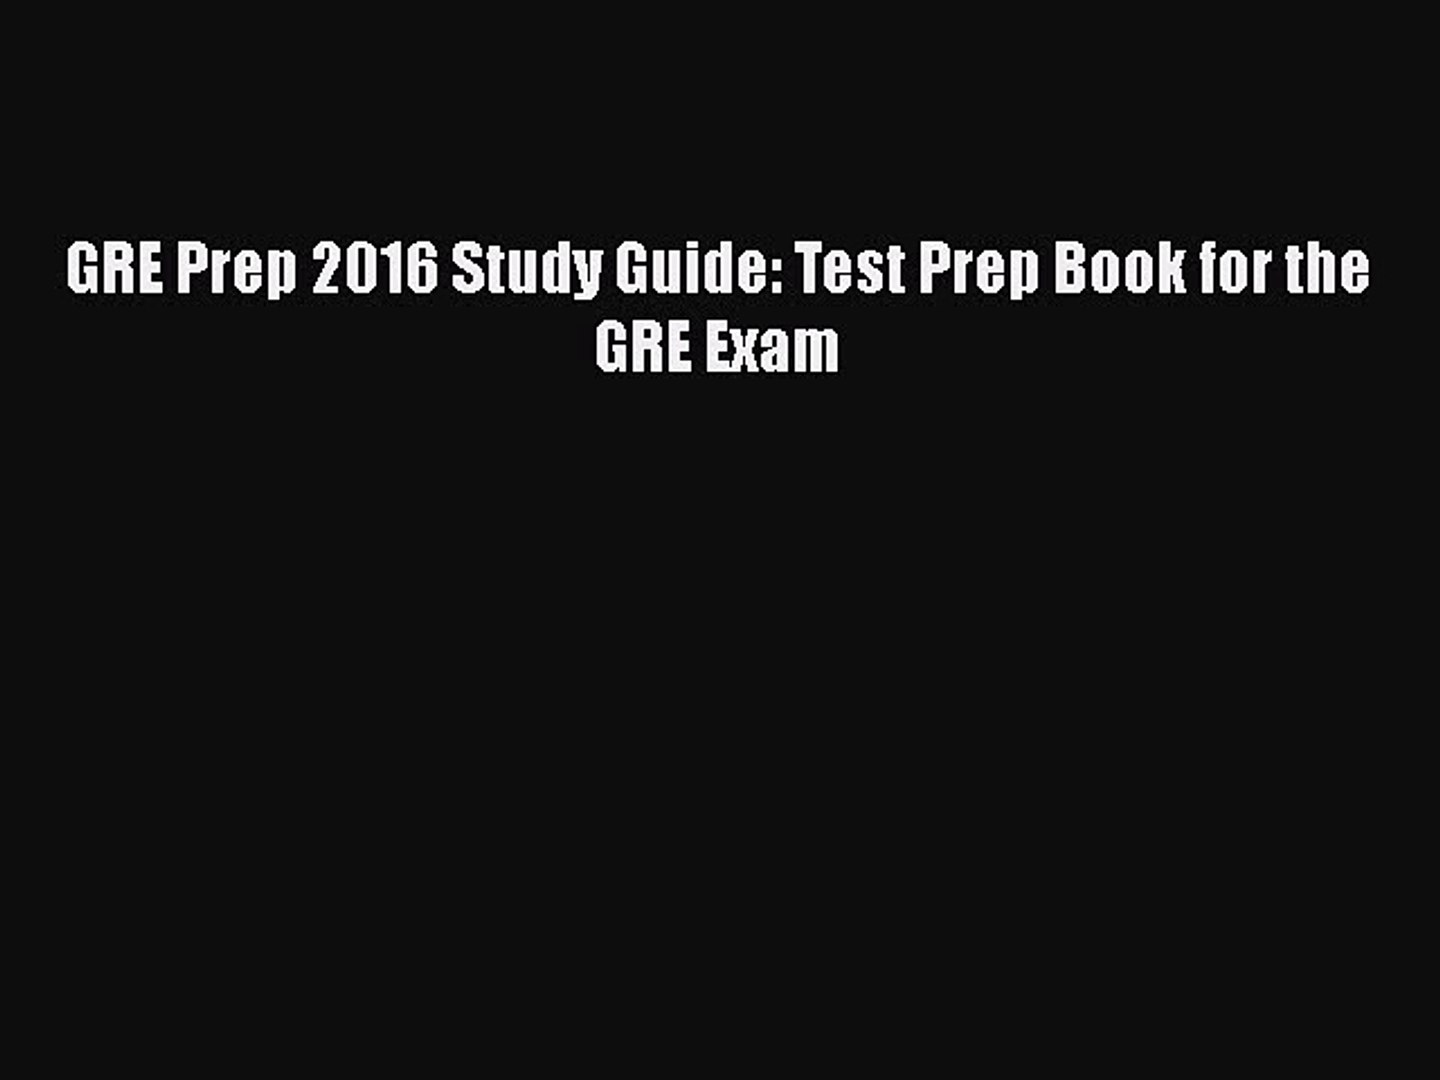 Gre Study Book >> Pdf Gre Prep 2016 Study Guide Test Prep Book For The Gre Exam Download Full Ebook